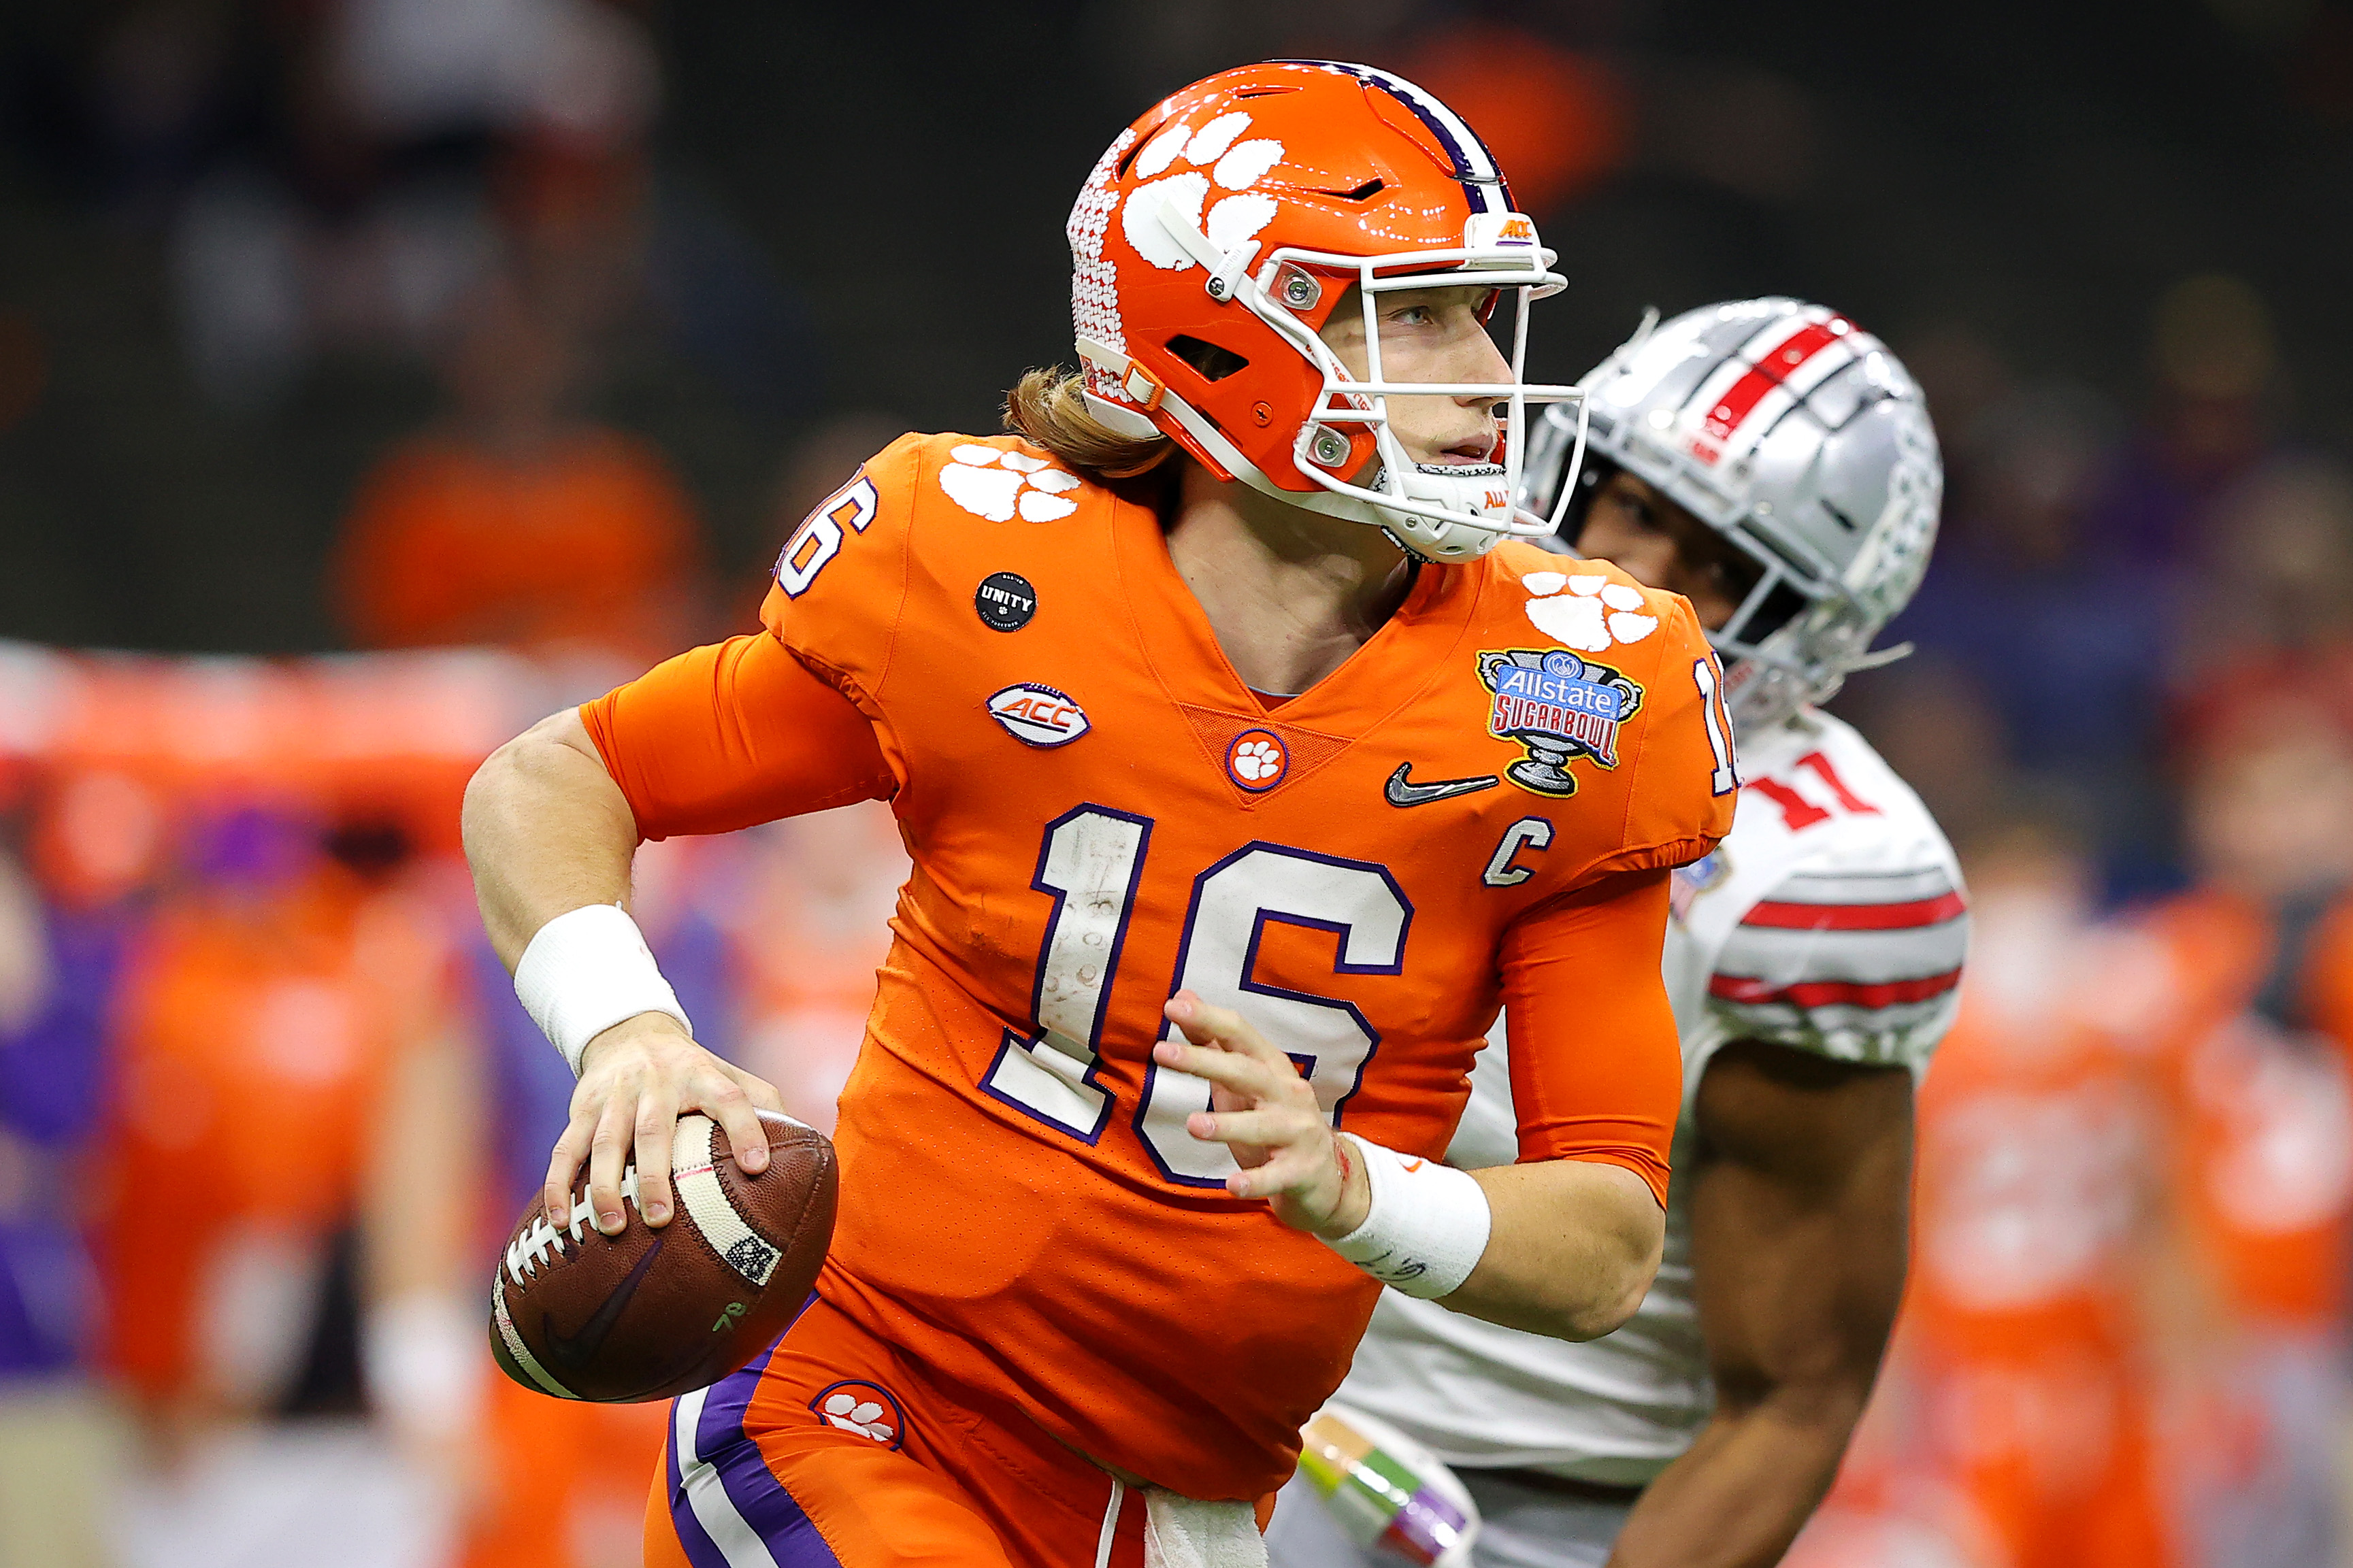 Trevor Lawrence #16 of the Clemson Tigers looks to pass in the third quarter against the Ohio State Buckeyes during the College Football Playoff semifinal game at the Allstate Sugar Bowl at Mercedes-Benz Superdome on January 01, 2021 in New Orleans, Louisiana.